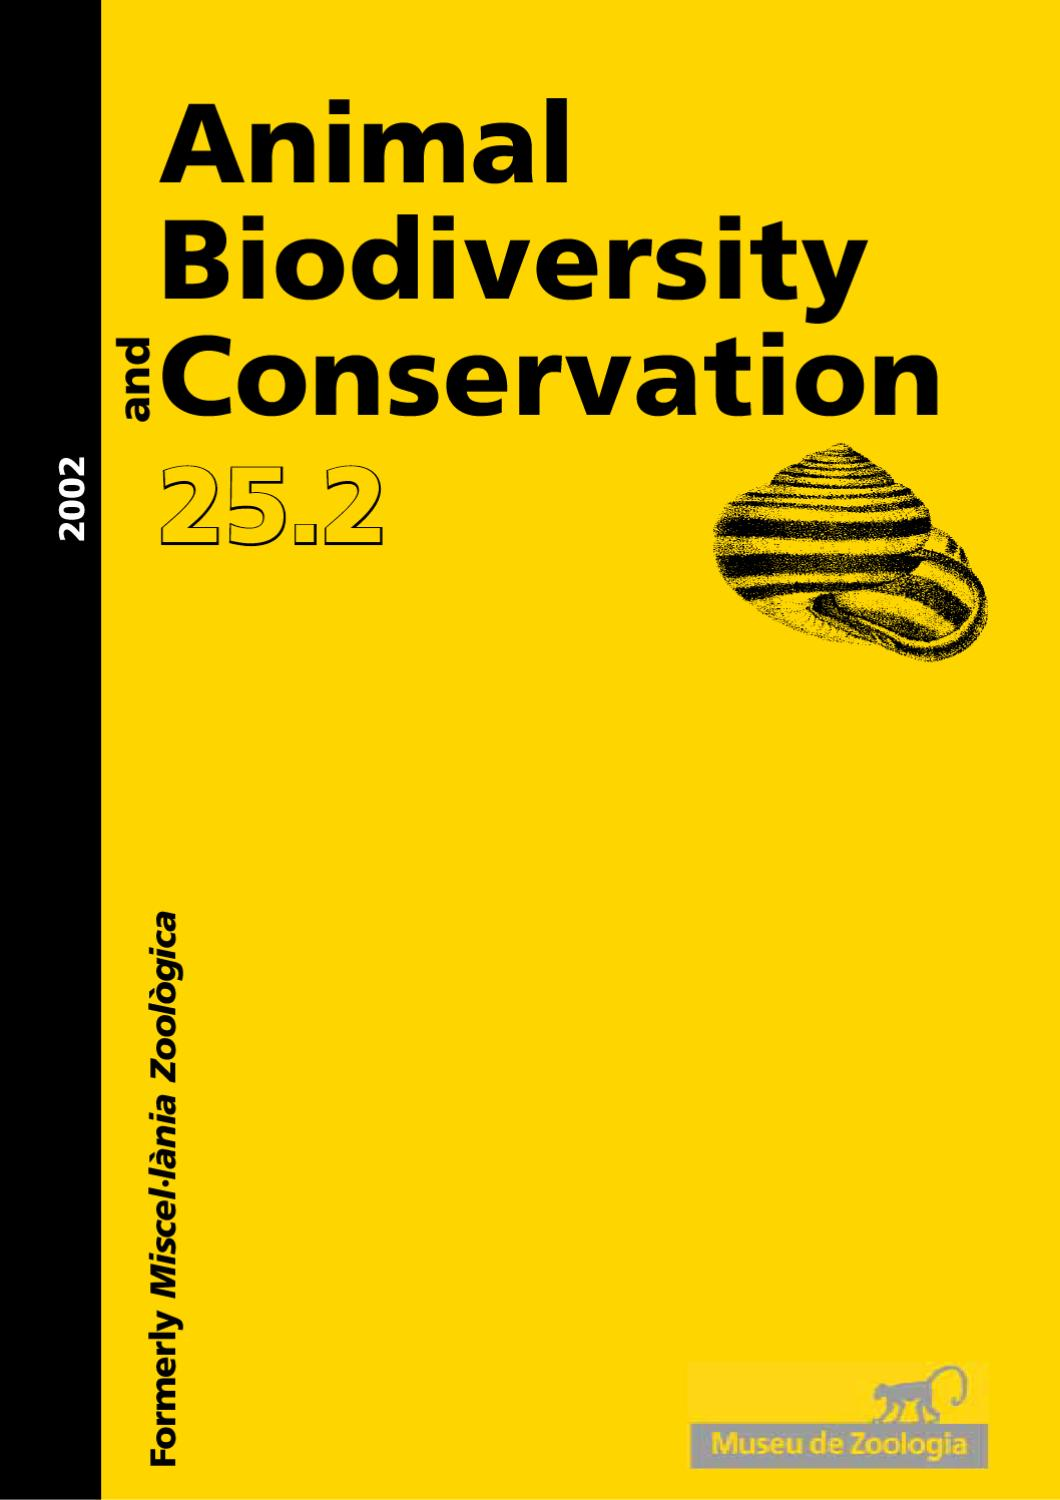 animal biodiversity and conservation issue 252 2002 by museu cincies naturals de barcelona mcnb issuu